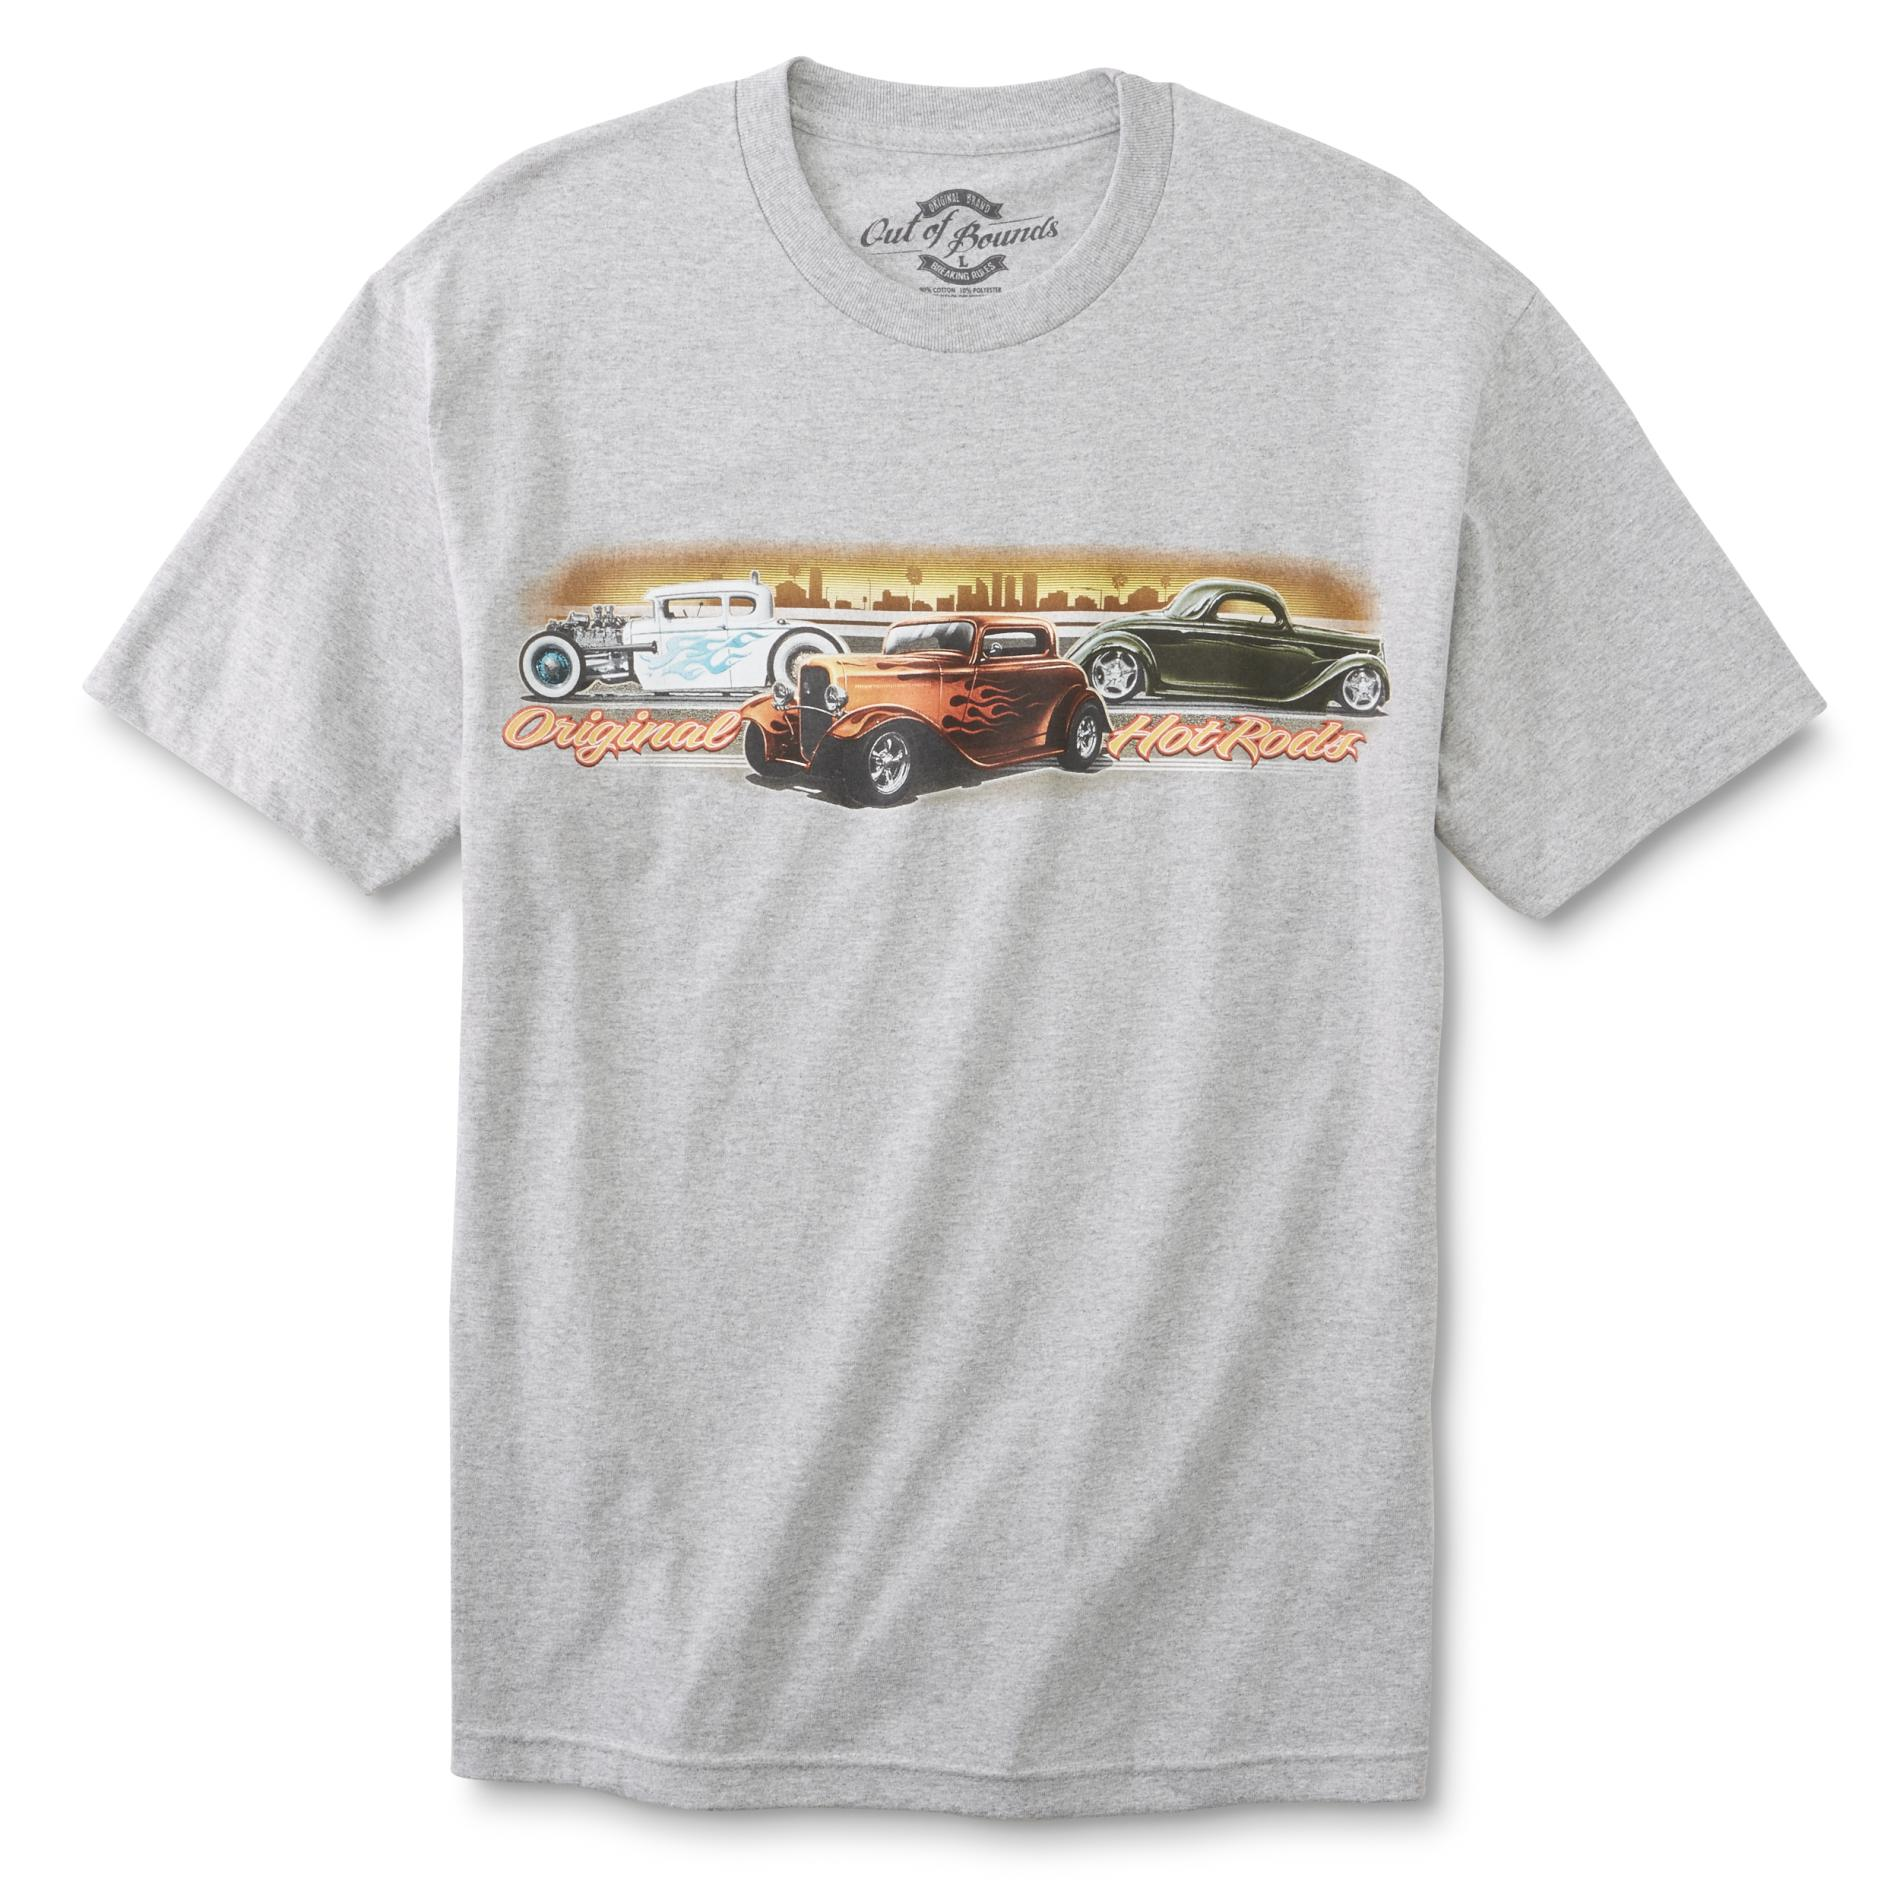 Men's Graphic T-Shirt - Hot Rods PartNumber: 041VA98421112P MfgPartNumber: OBZT213-0062-XXL